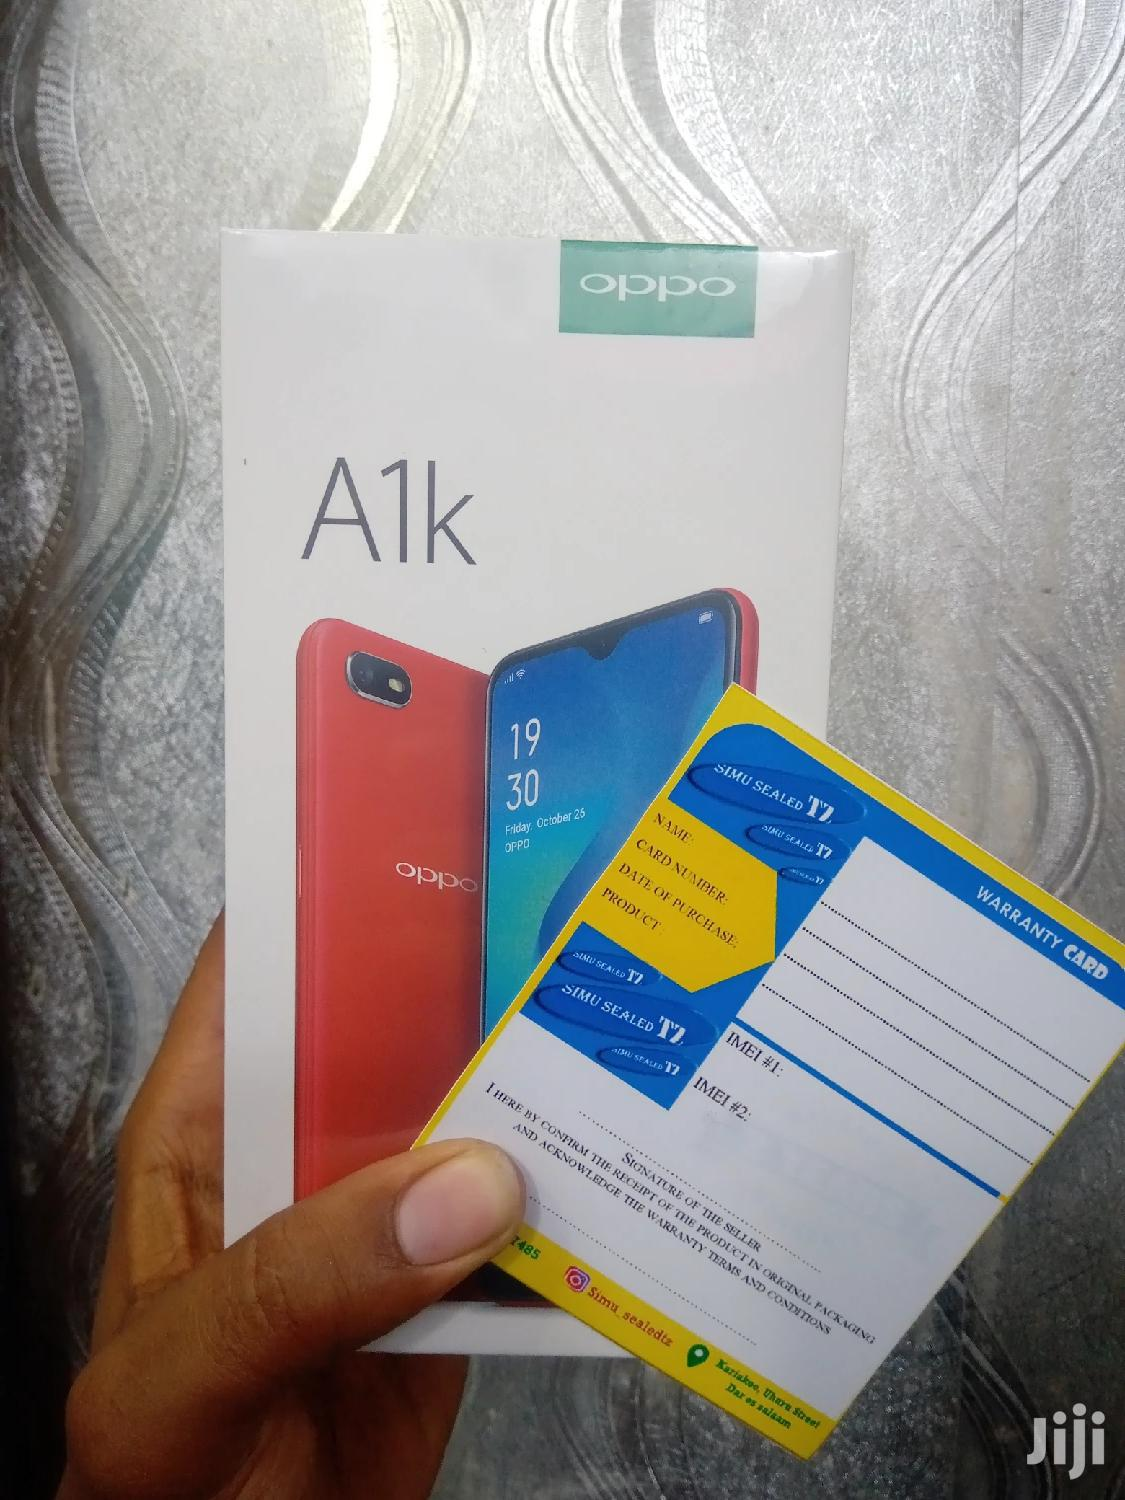 New Oppo A1k 32 GB Black | Mobile Phones for sale in Ilala, Dar es Salaam, Tanzania